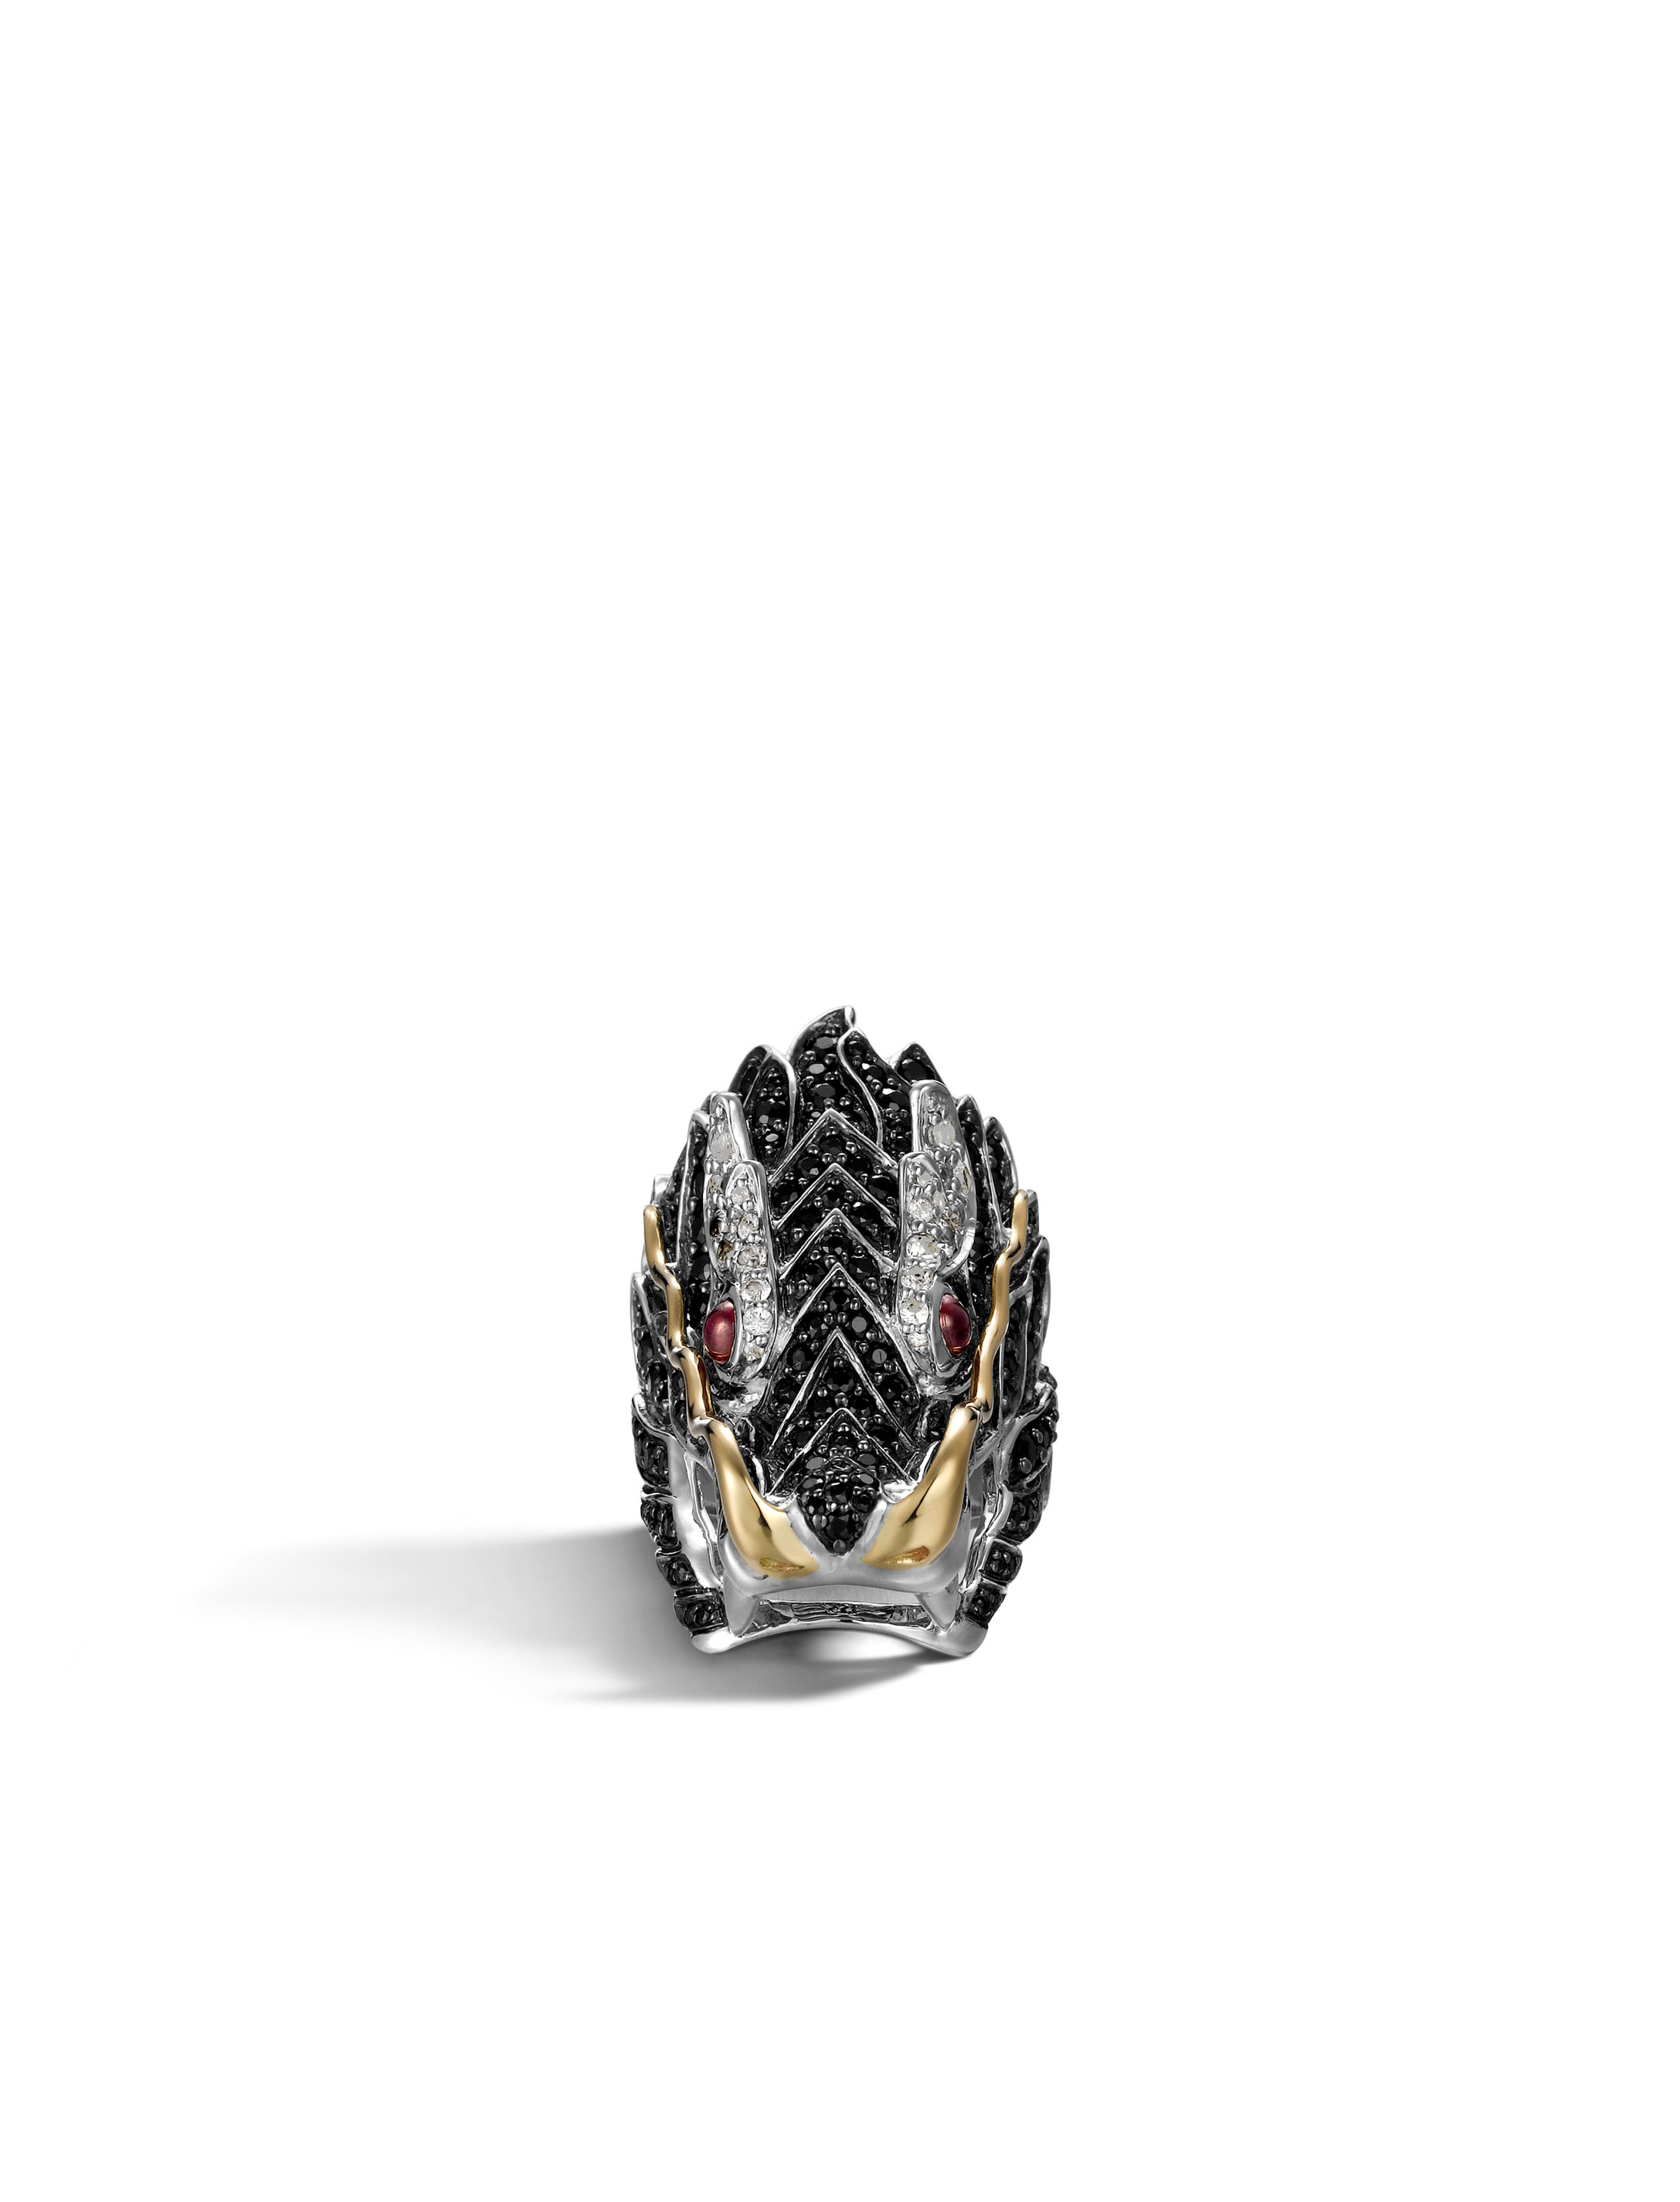 Legends Naga Head Ring in Silver and 18K Gold with Gemstone, Ruby, large